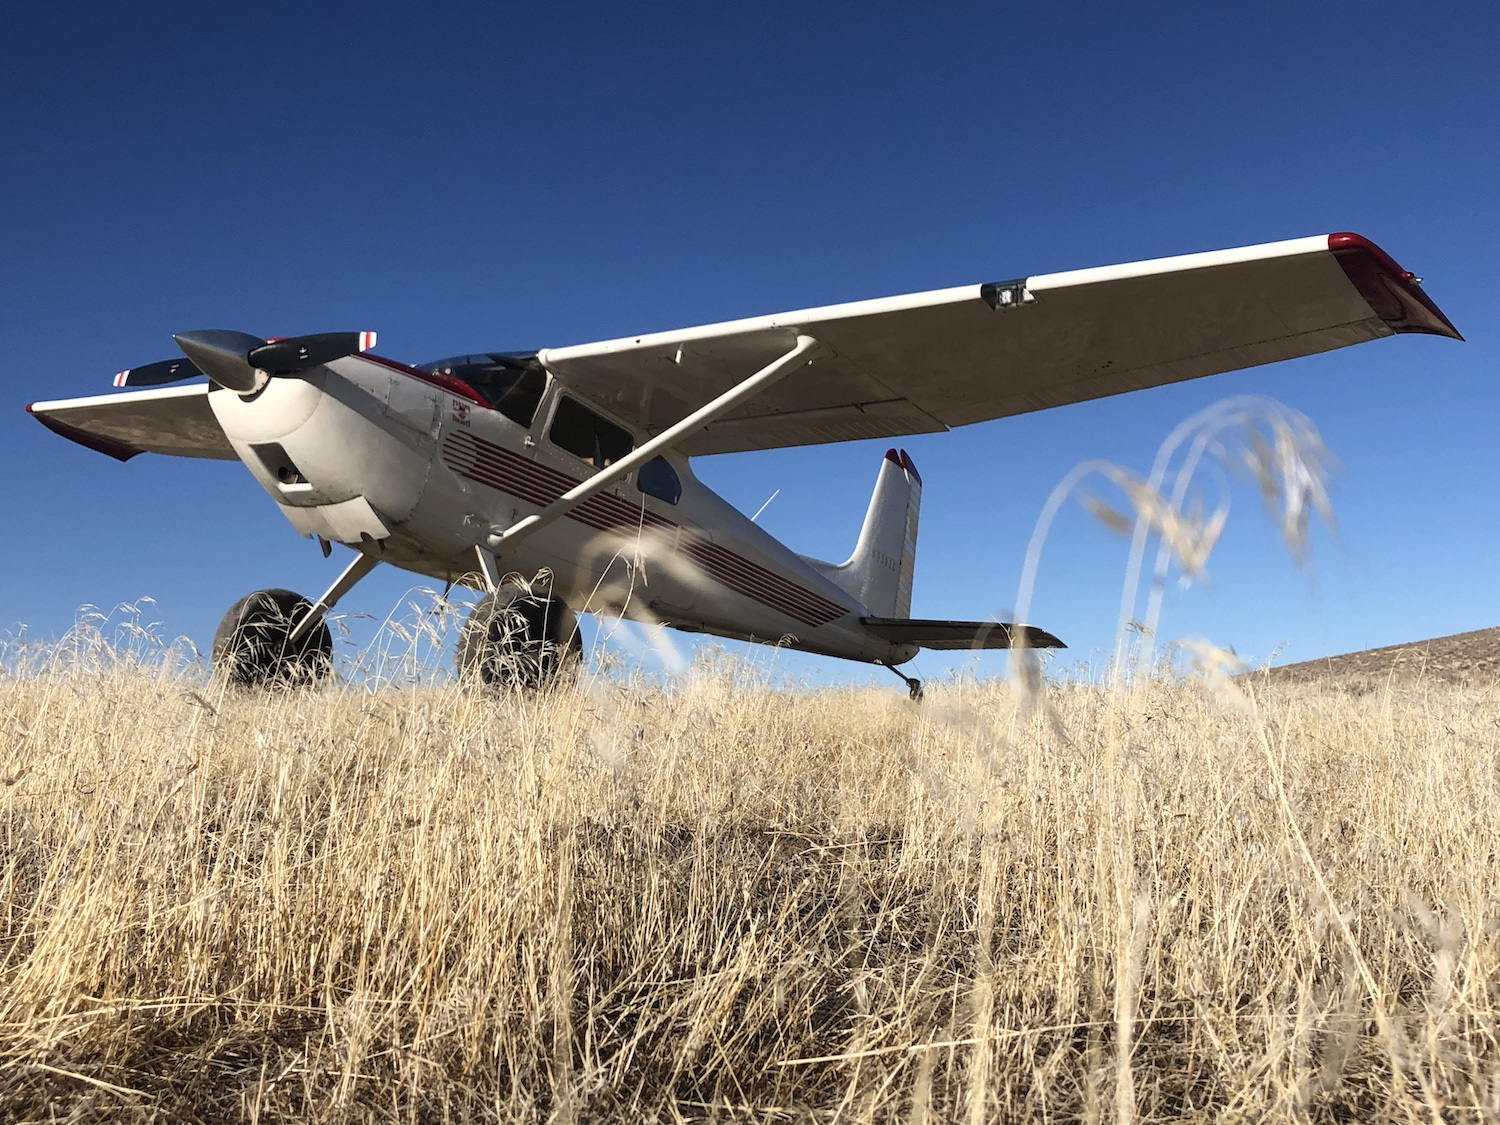 Cessna 180 by Shawn Stover